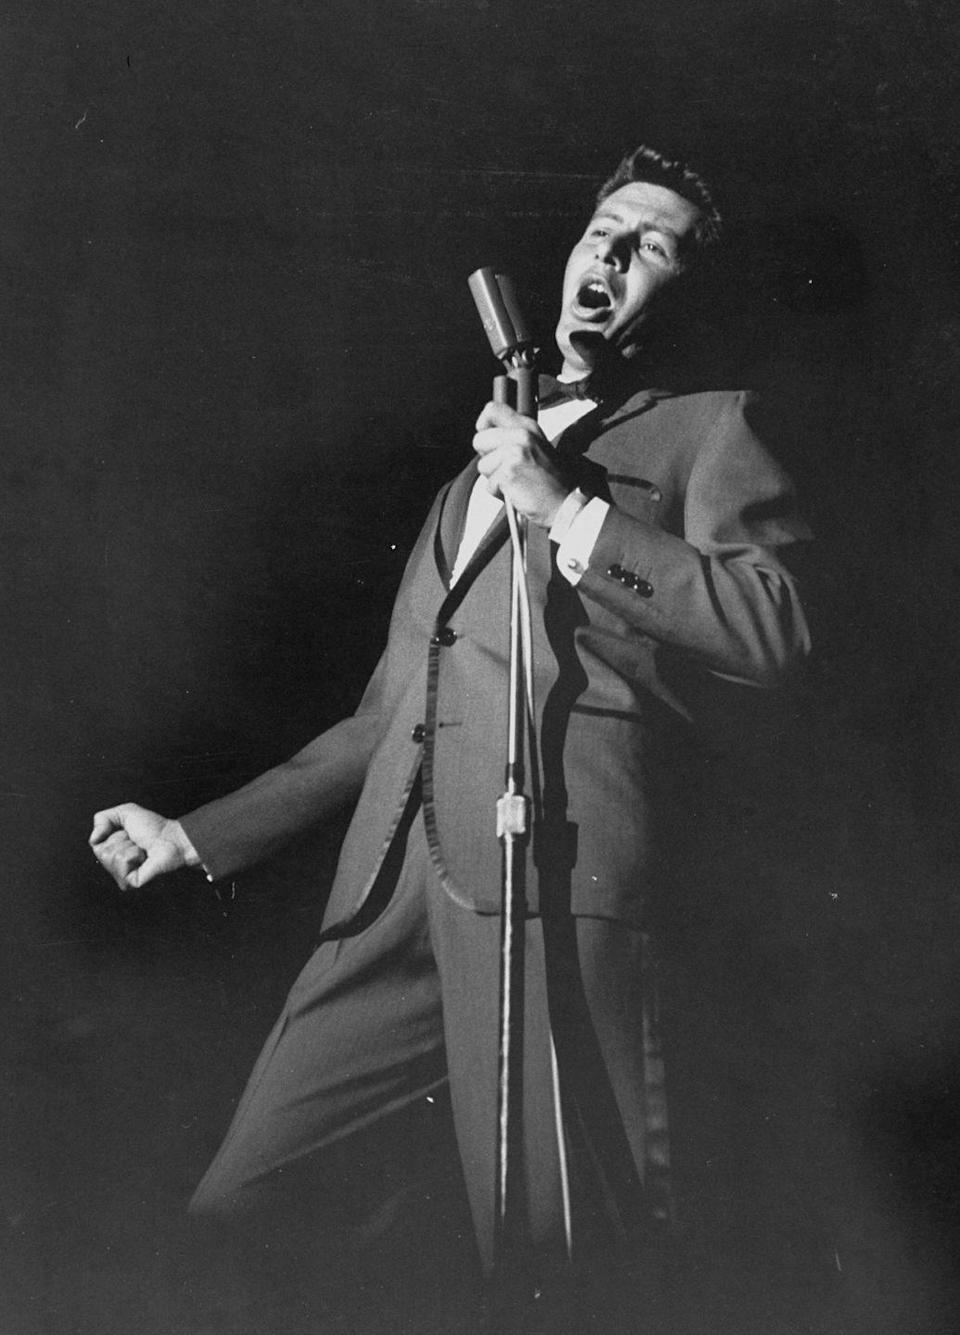 <p>Eddie Fisher performs in 1958. He was one of the most popular artists during the '50s and even hosted his own TV show.</p>